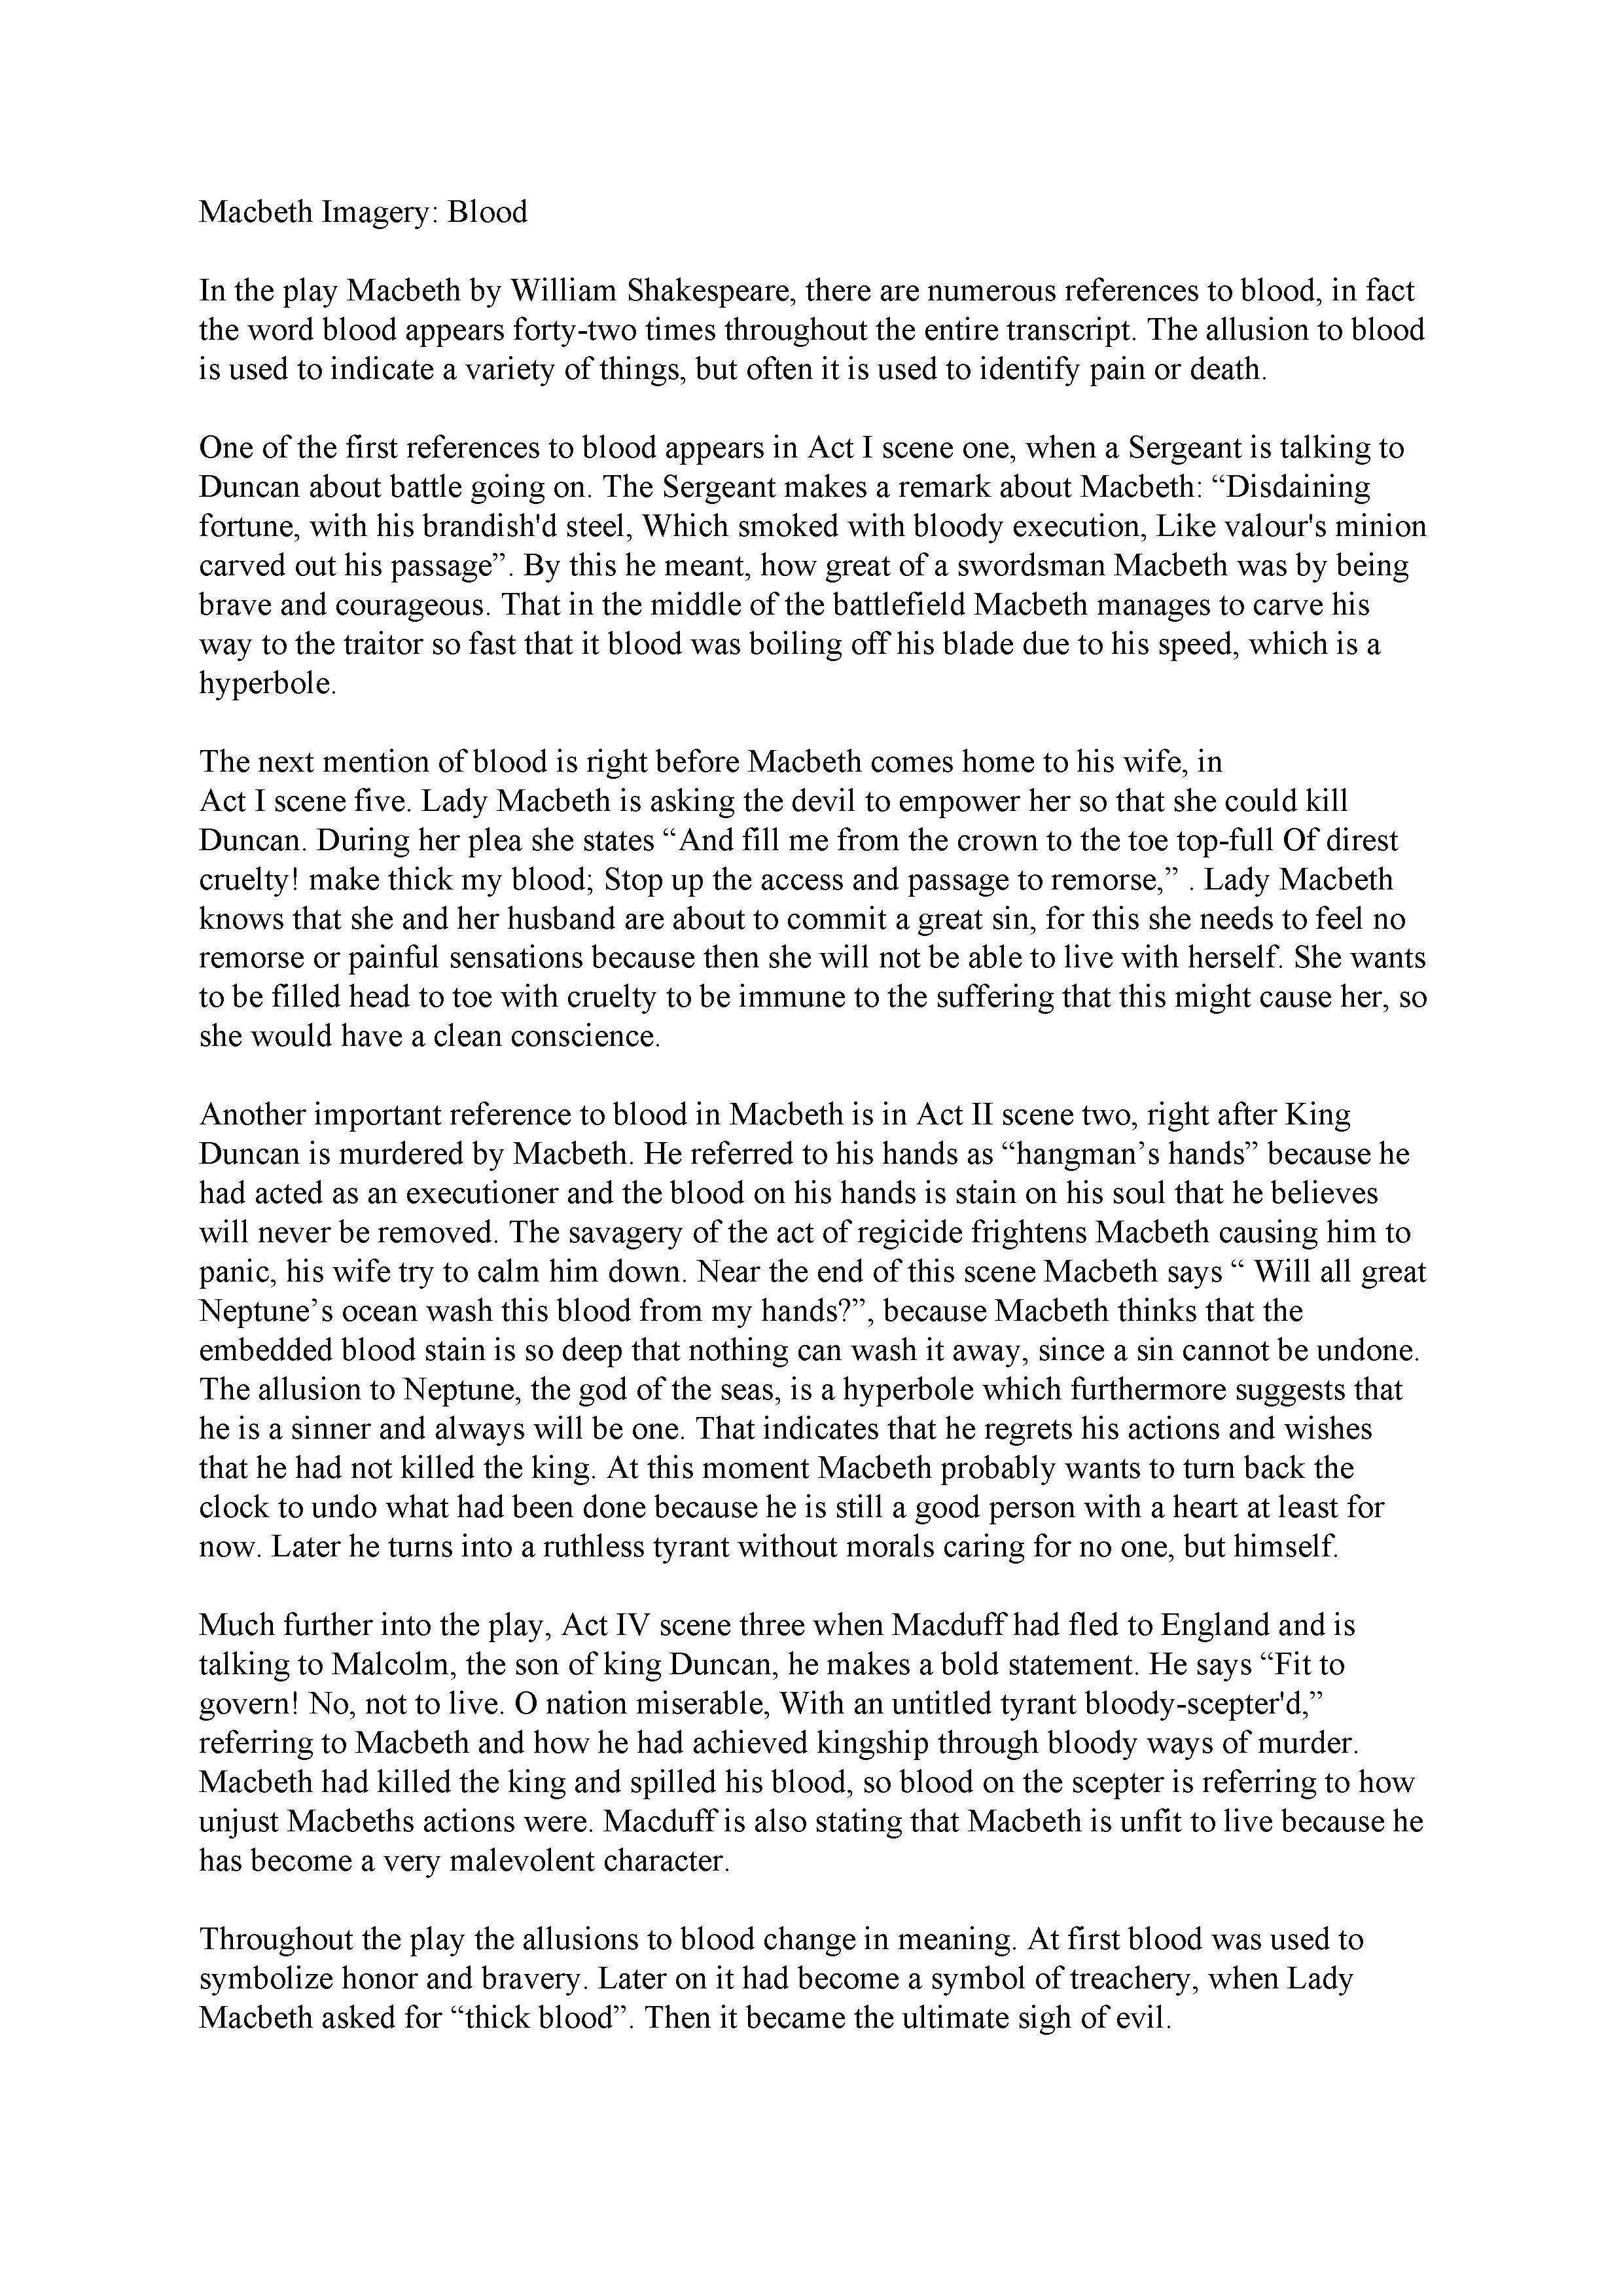 014 Essay Example How To Start Good Macbeth Awesome A Paper For College Introduction Biography About Yourself Full